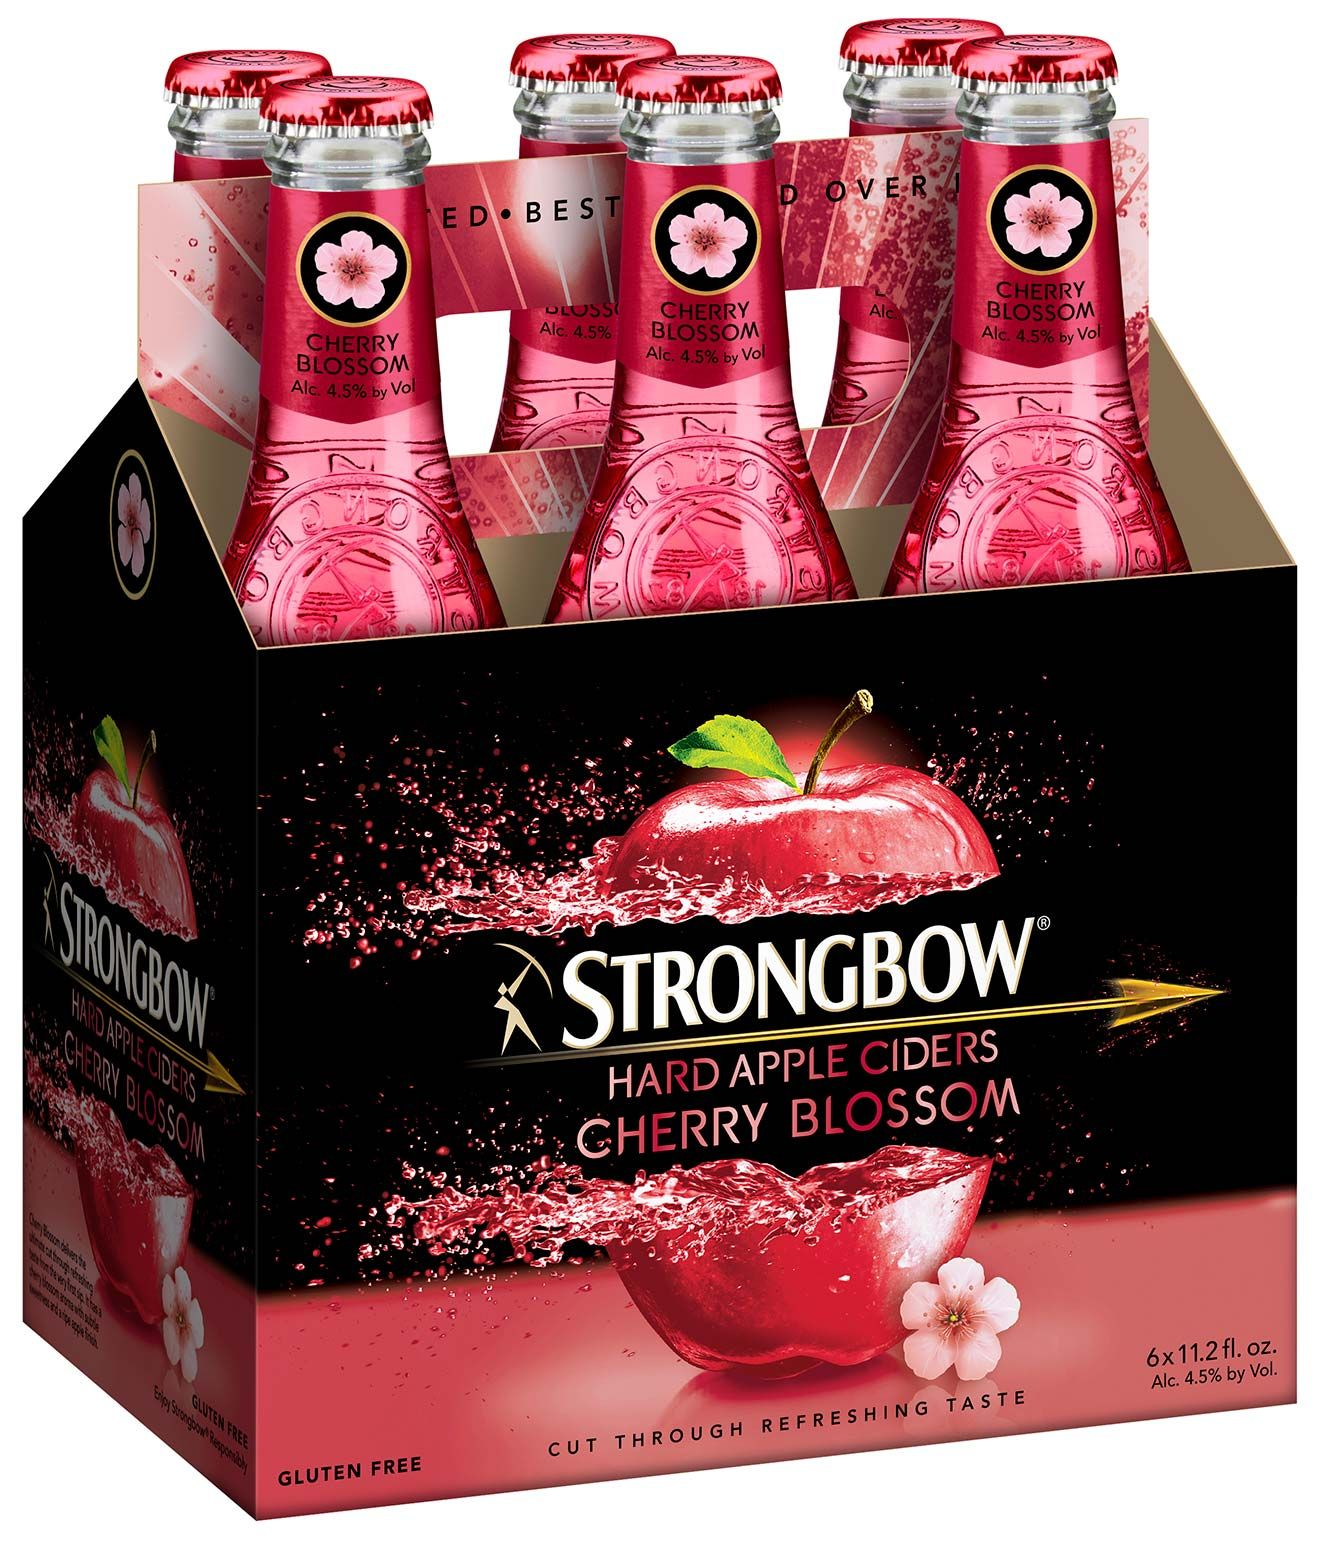 Strongbow Launches Cherry Blossom Hard Cider Hard Apple Cider Hard Cider Cider